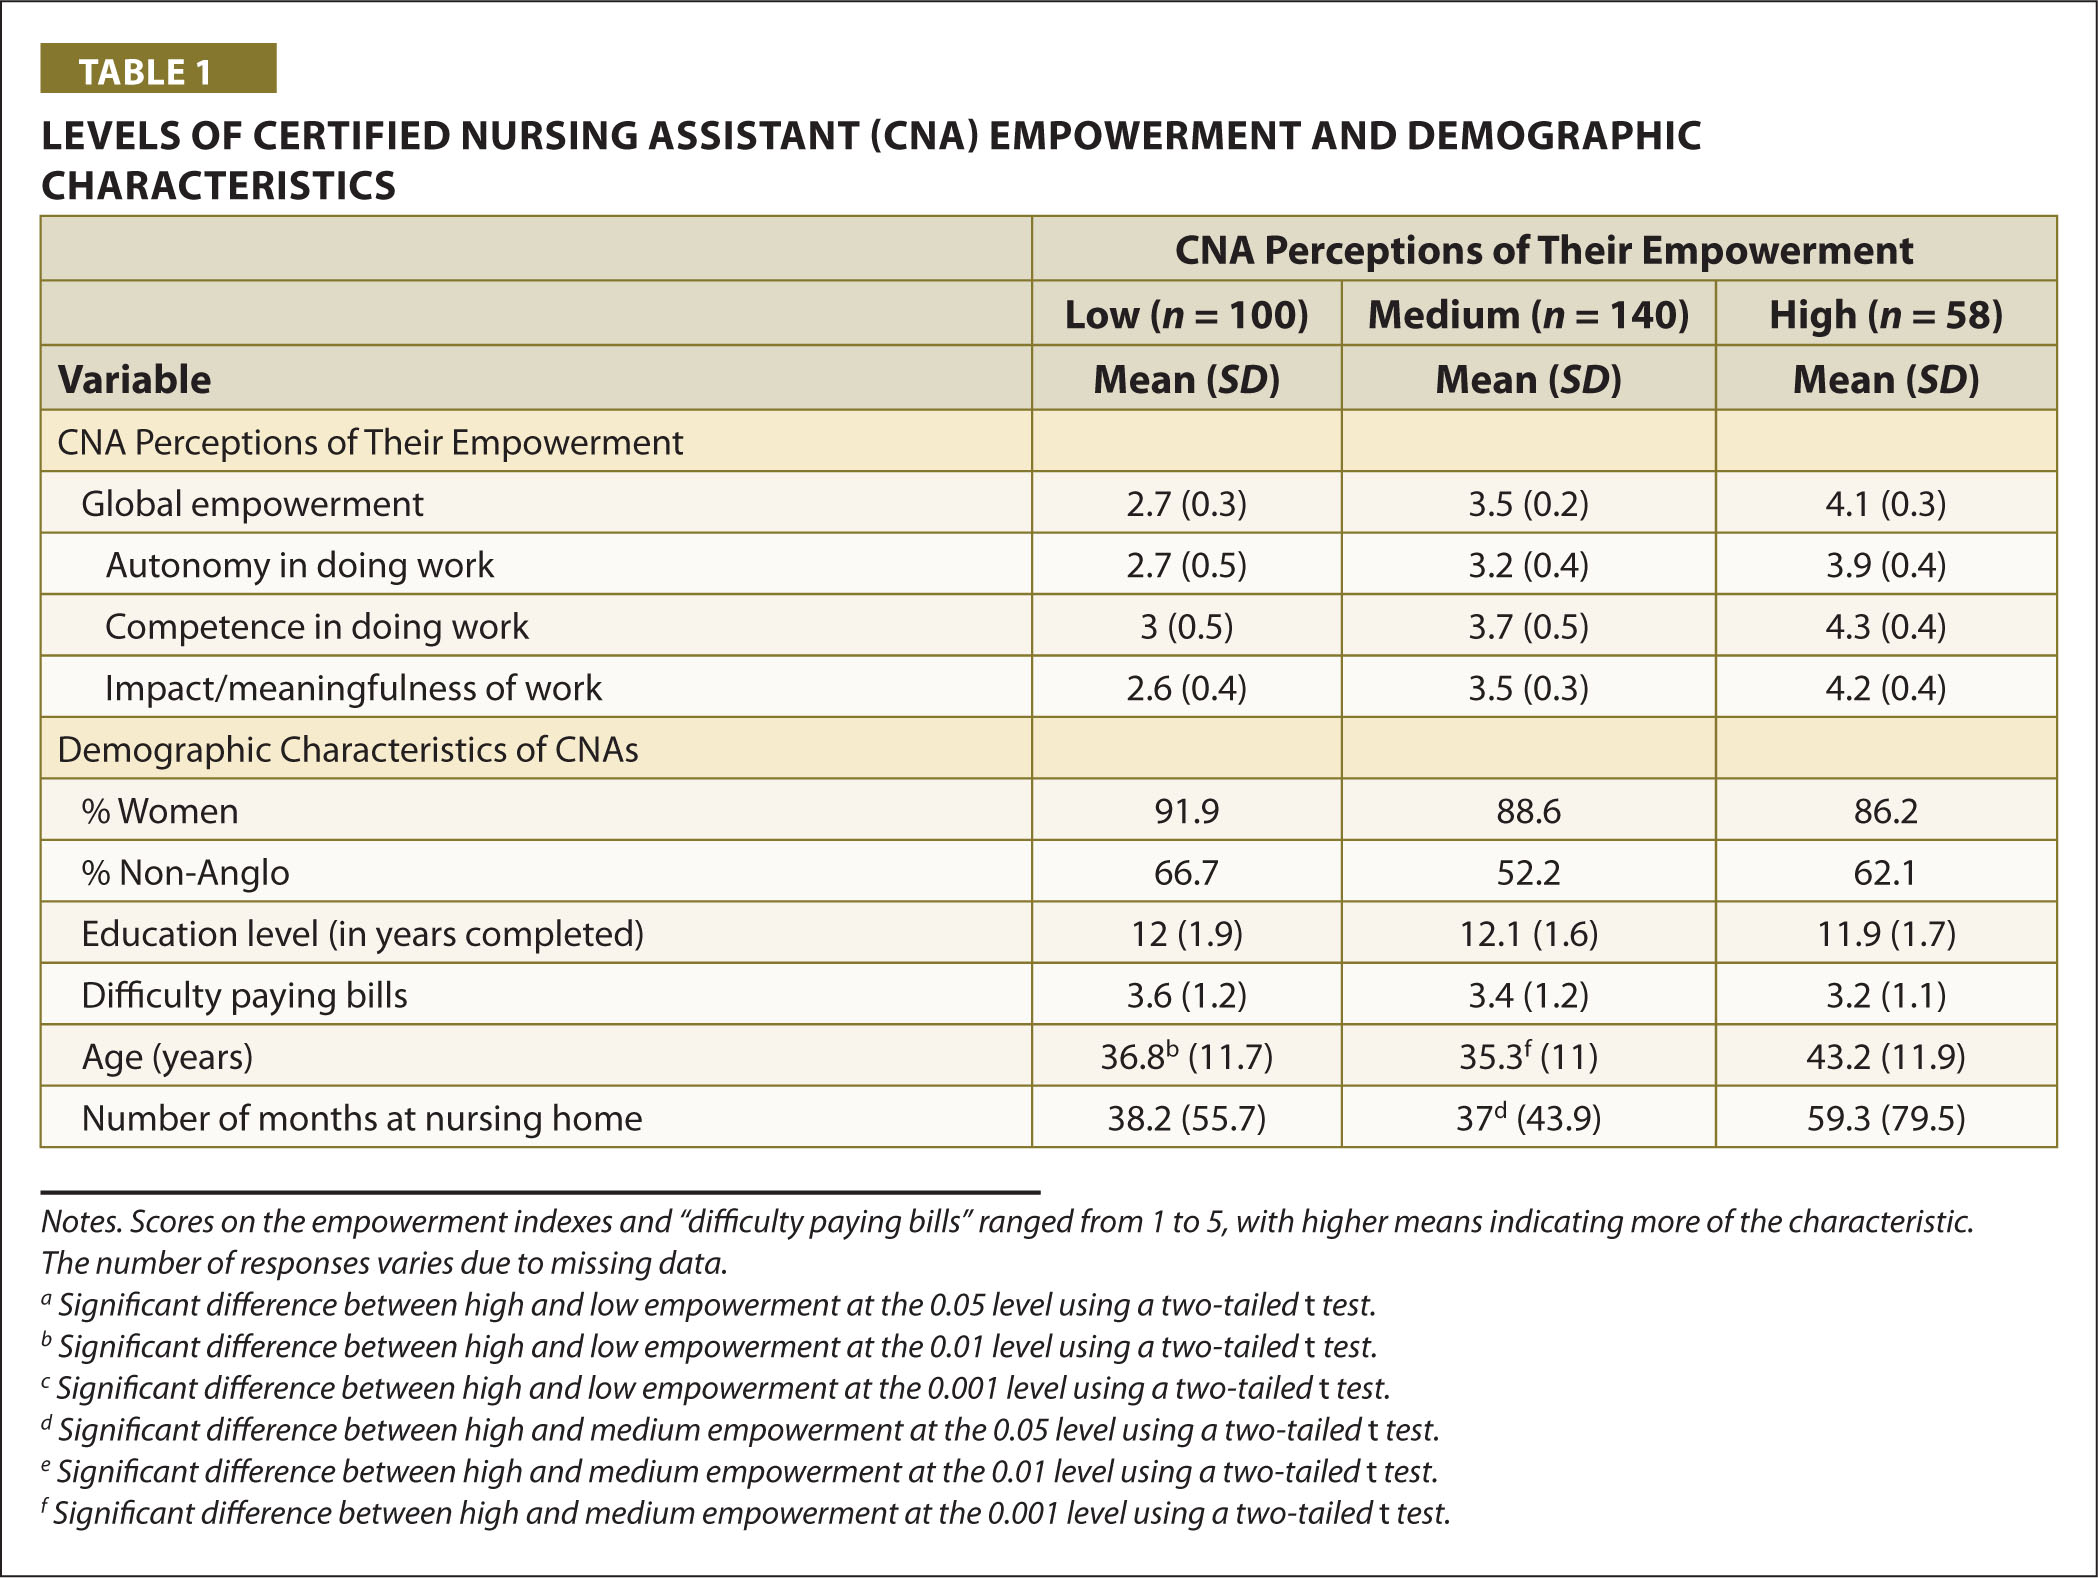 Levels of Certified Nursing Assistant (CNA) Empowerment and Demographic Characteristics